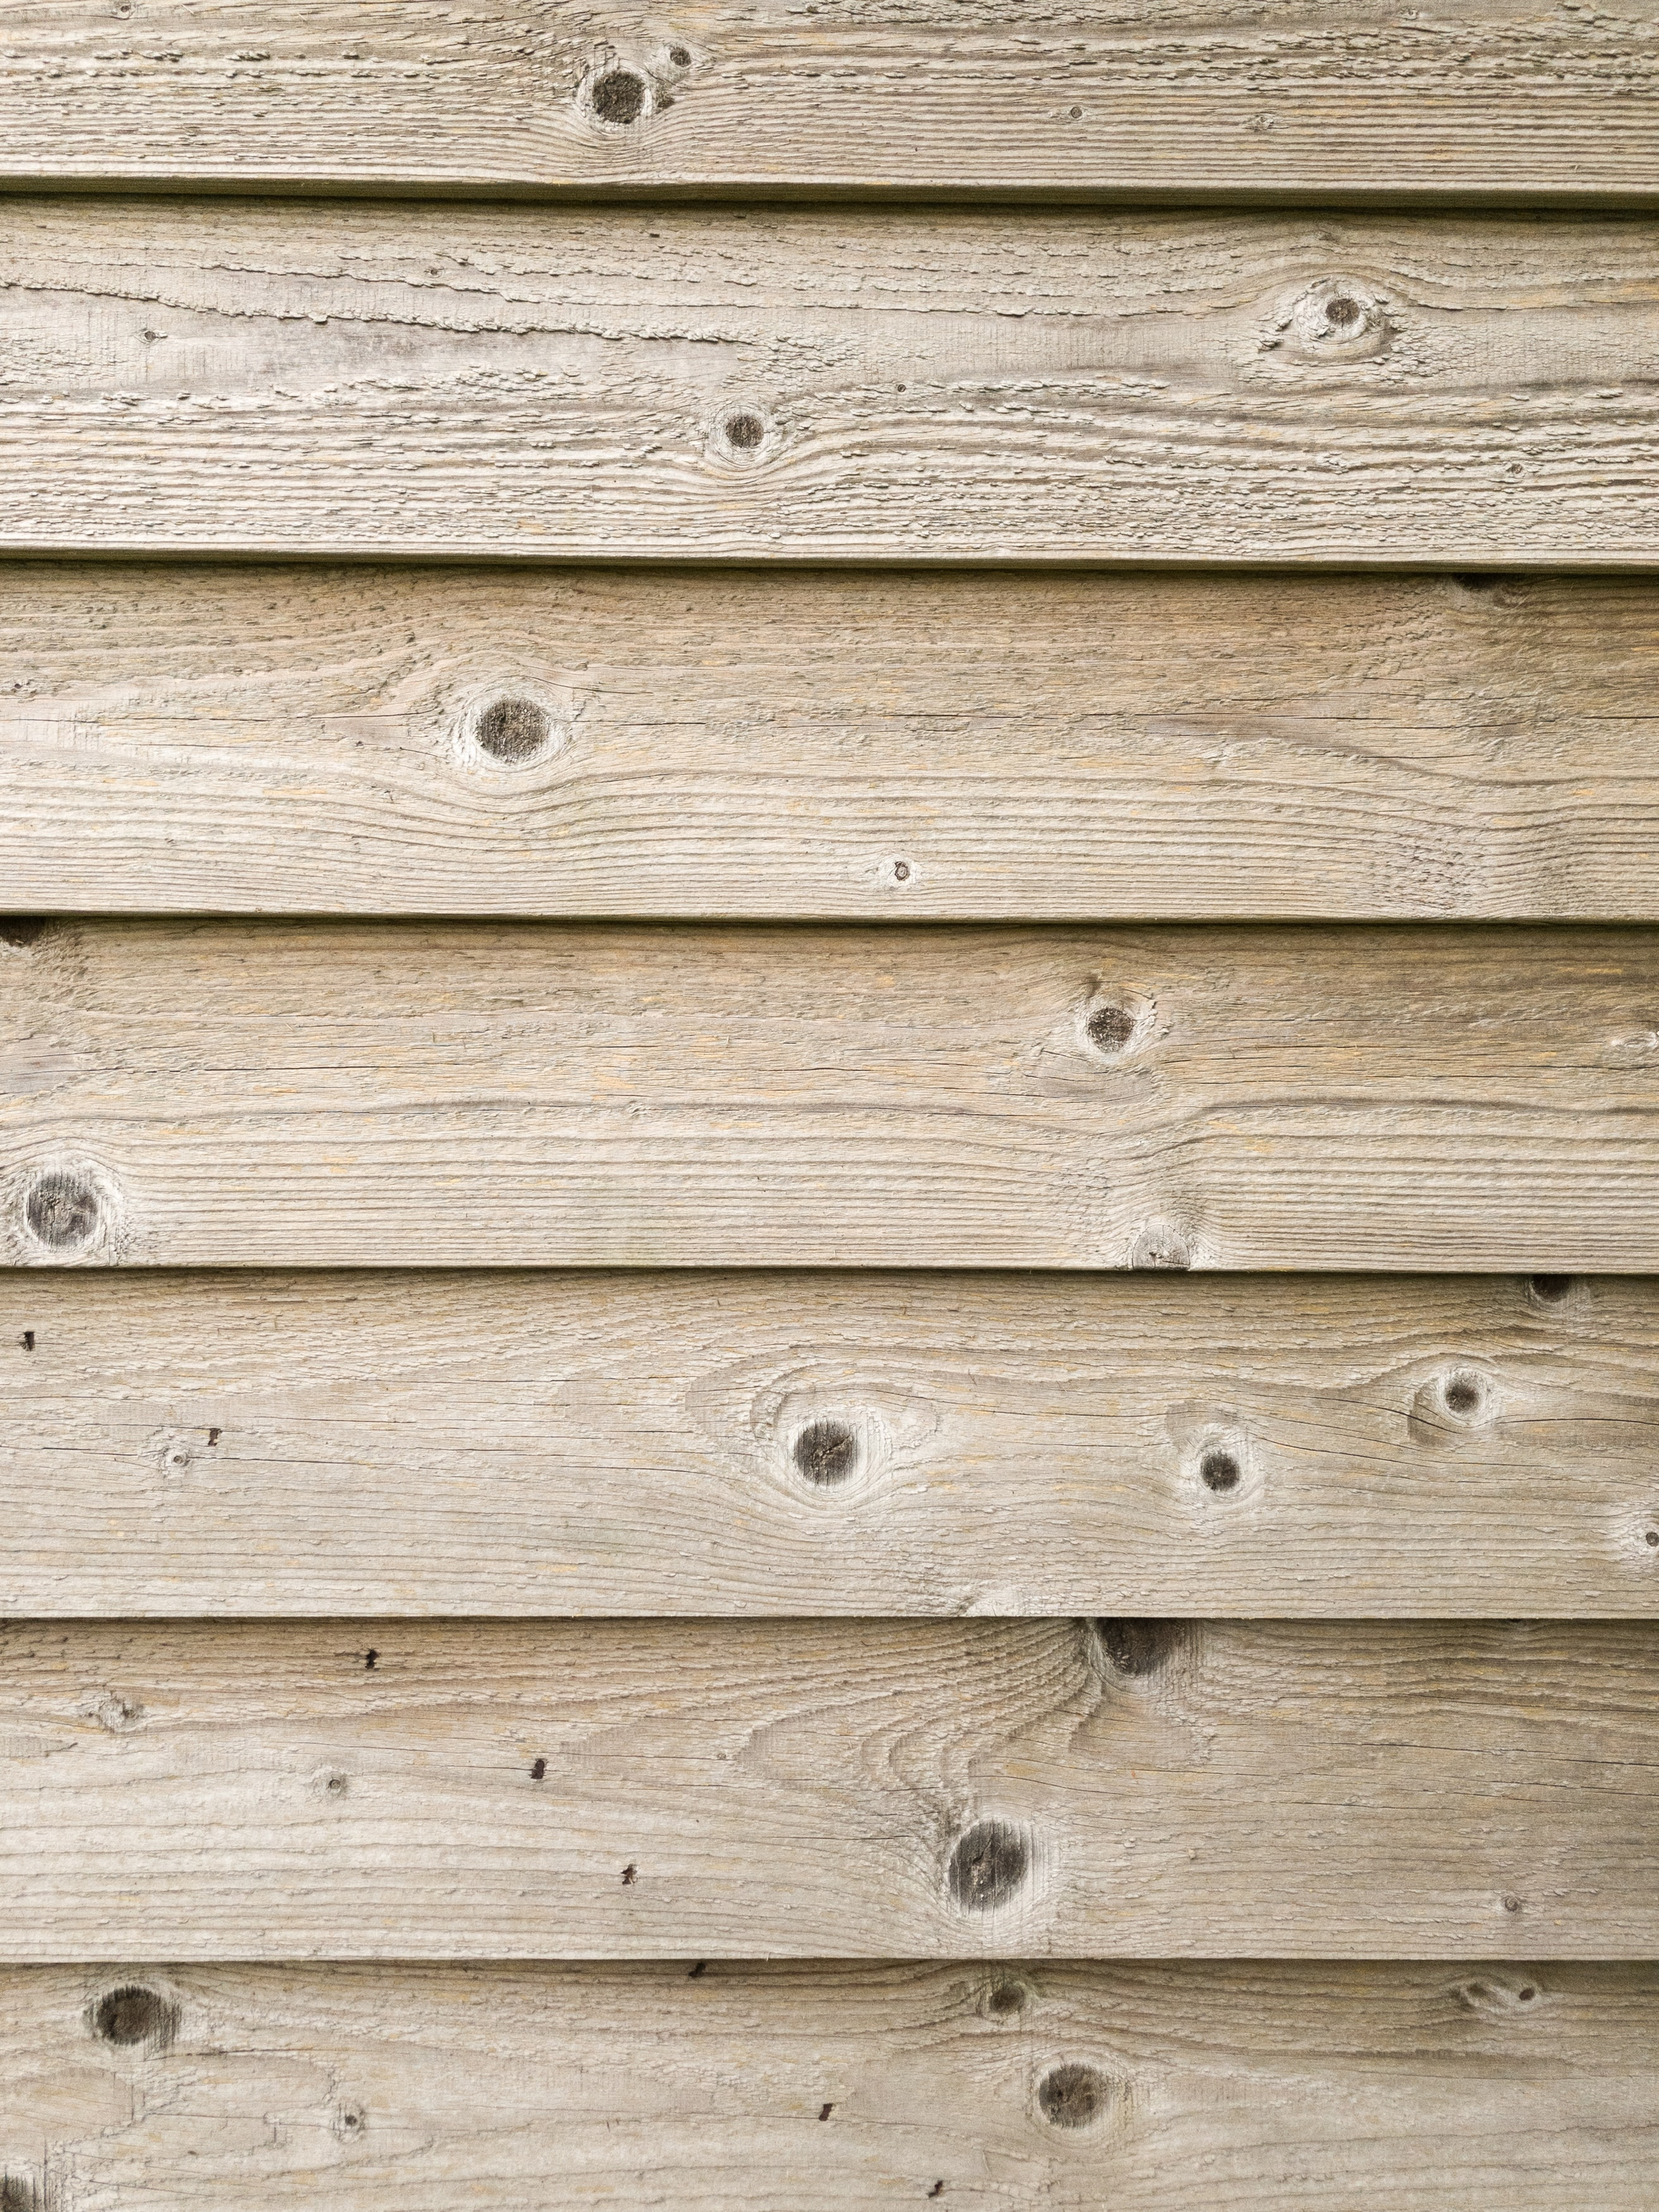 136722 download wallpaper Textures, Texture, Planks, Board, Wood, Wooden, Stripes, Streaks, Tree screensavers and pictures for free